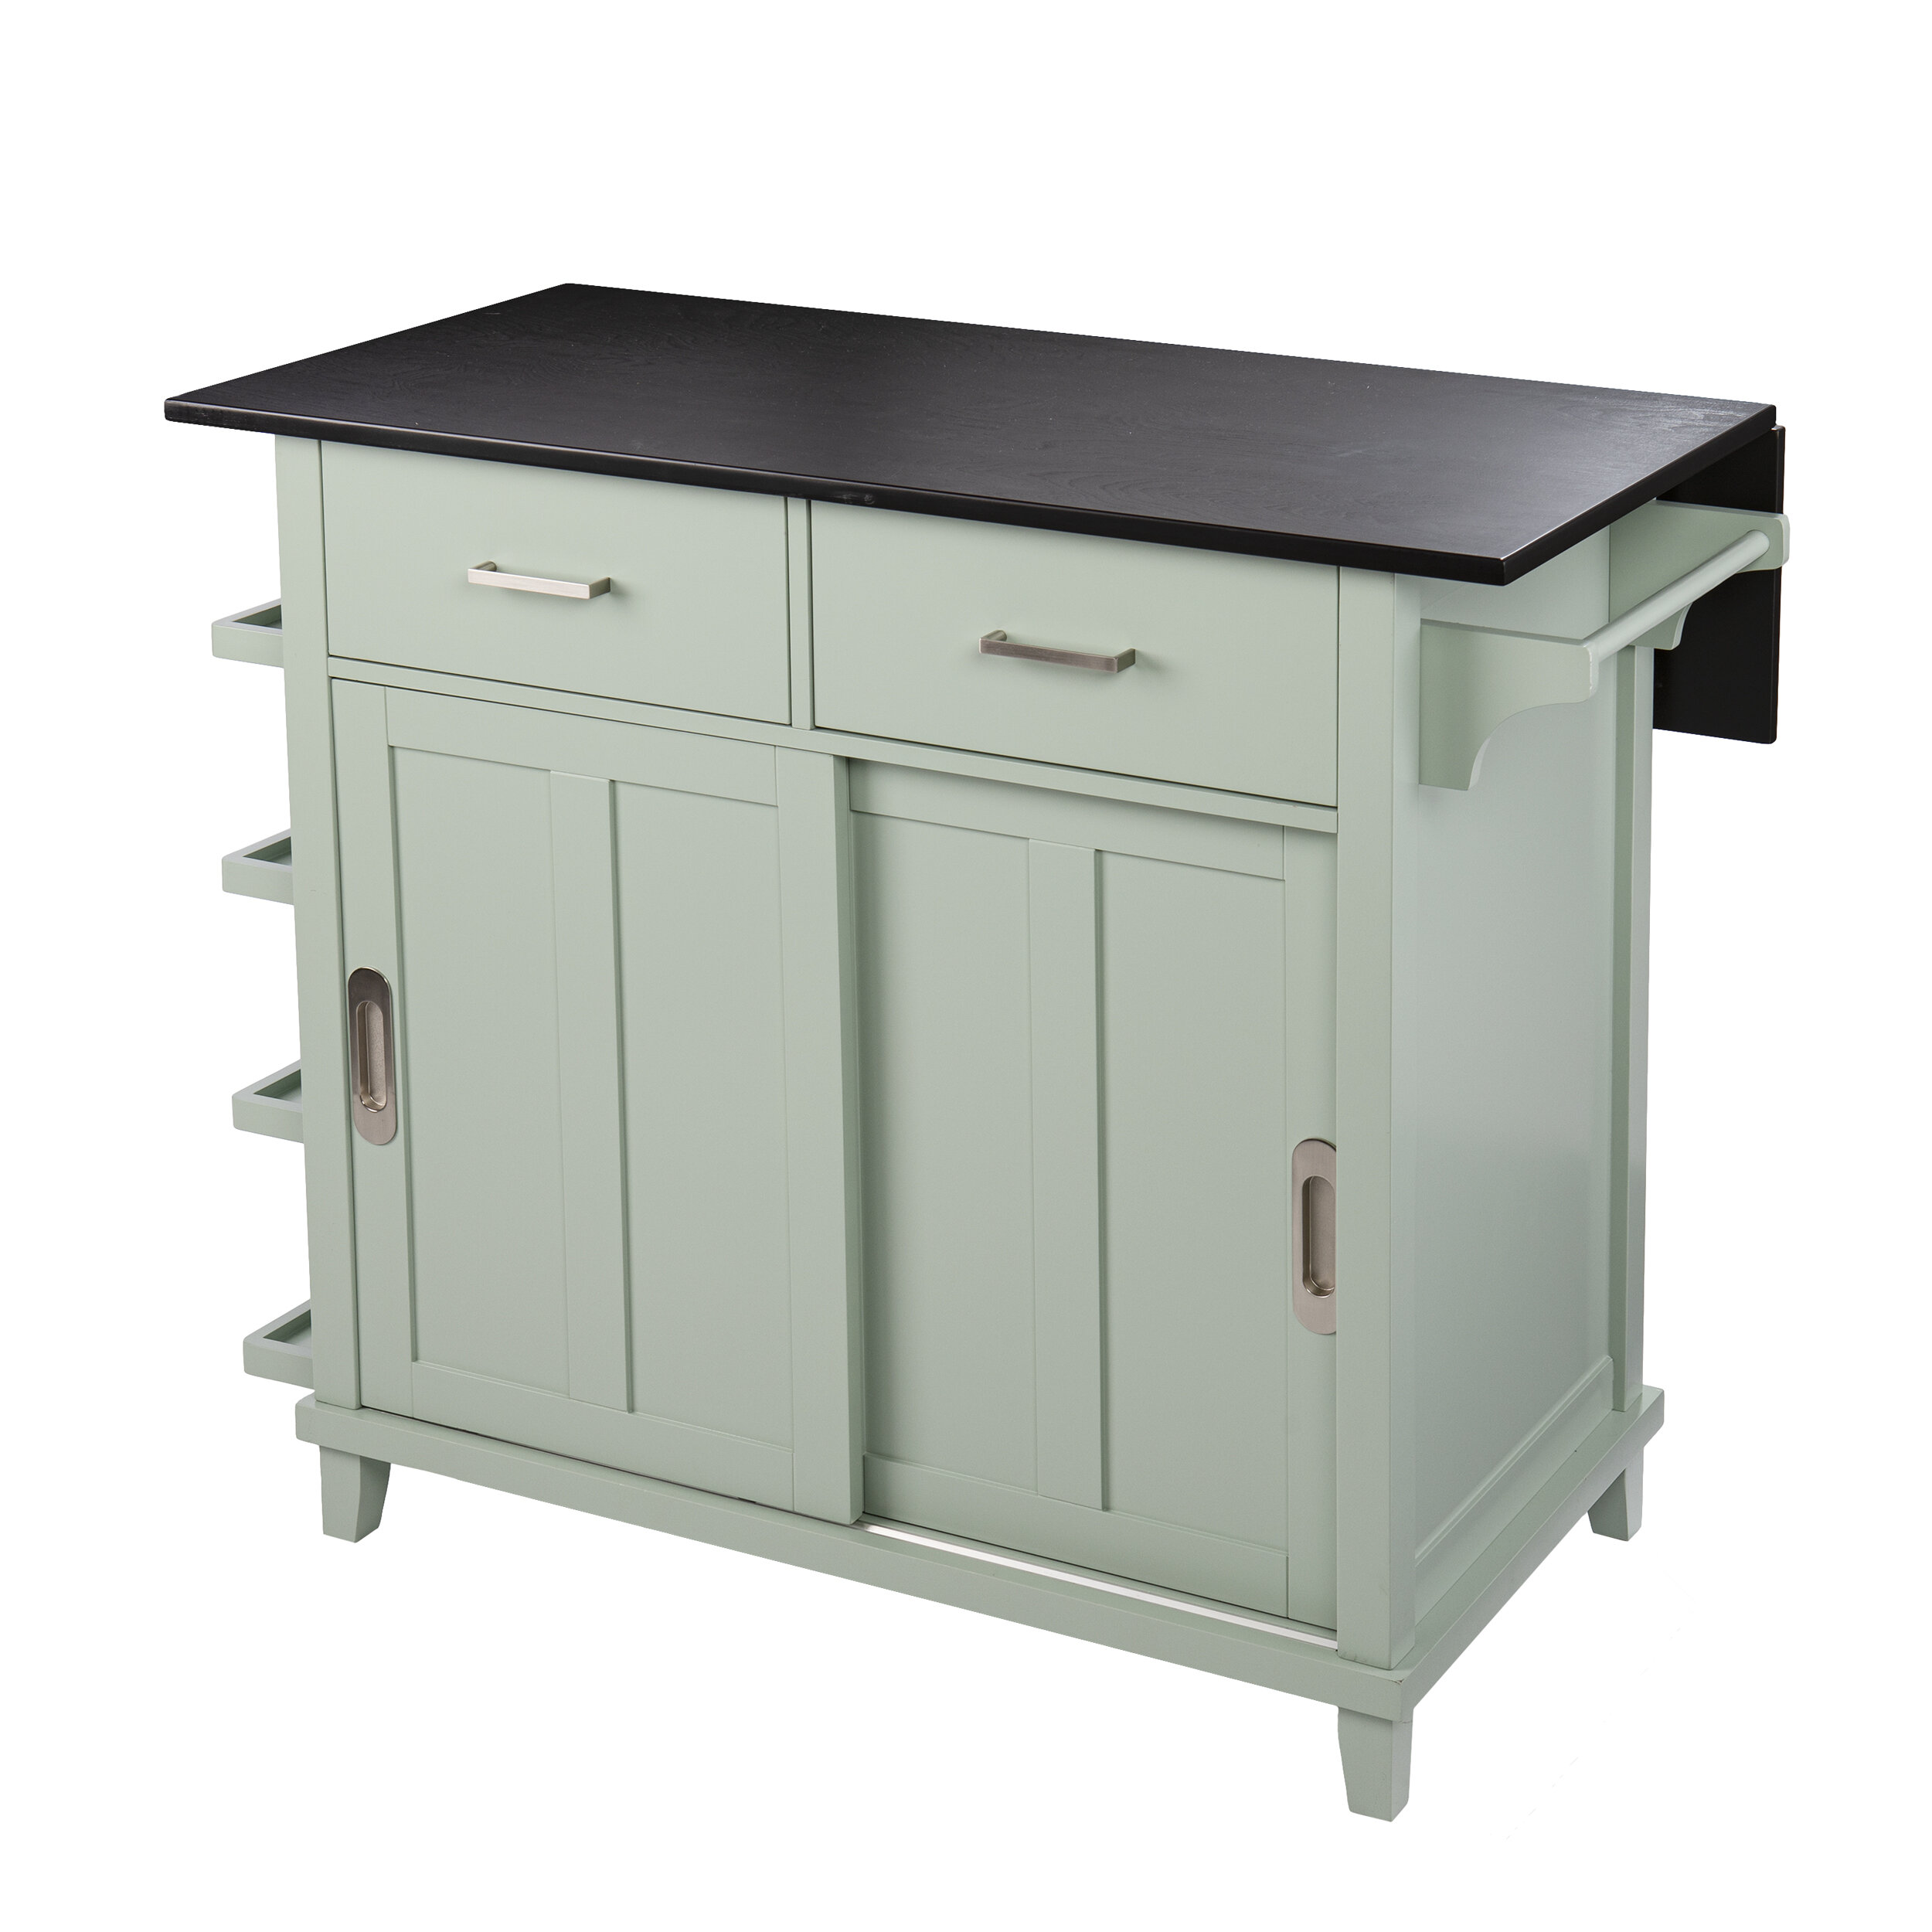 Picture of: Longshore Tides Ollerton Freestanding Kitchen Island Mint Green And Black Reviews